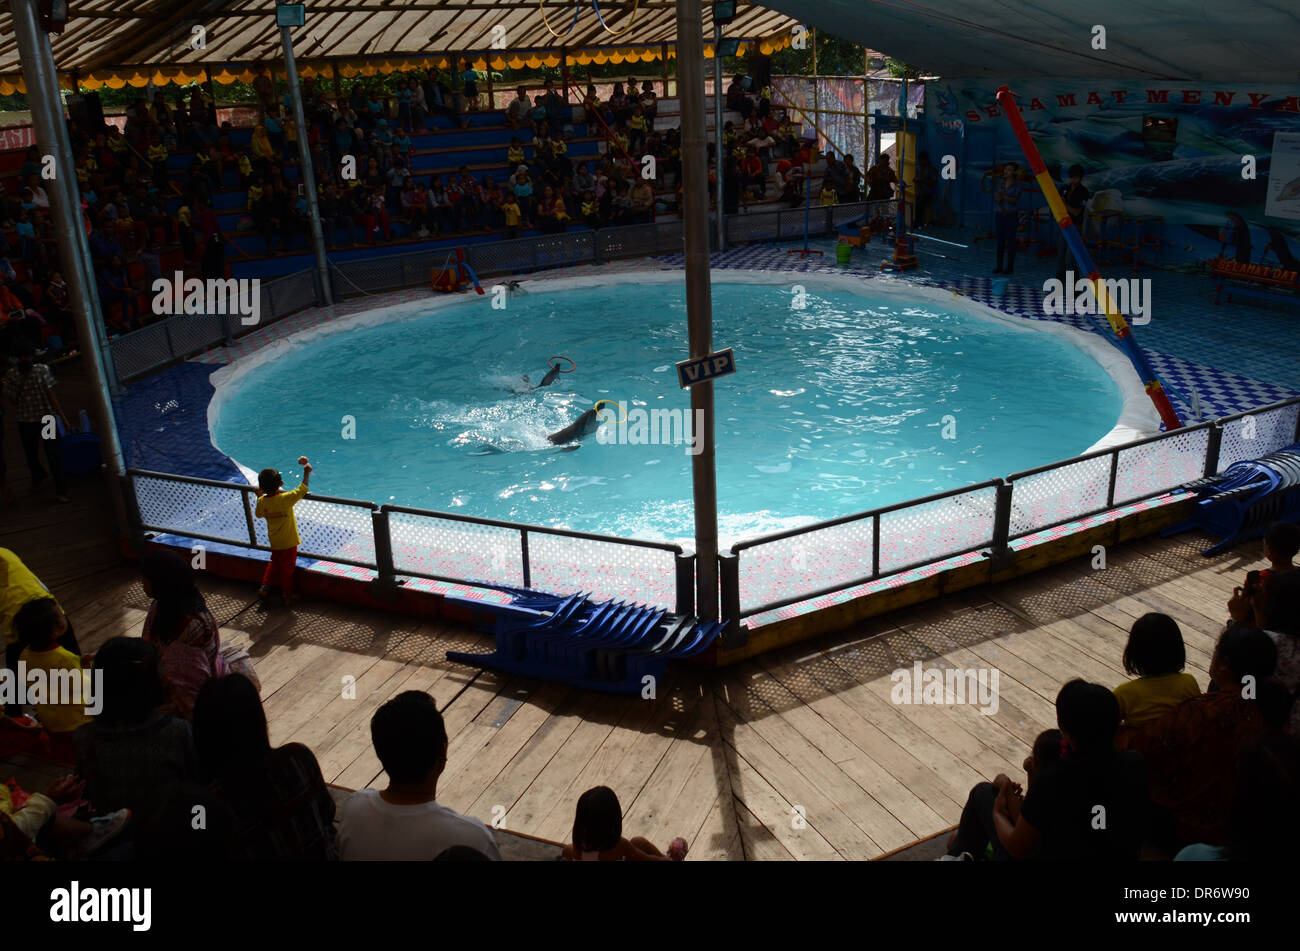 Spectators watching the show at a travelling dolphin circus in Kediri, East Java, Indonesia. - Stock Image